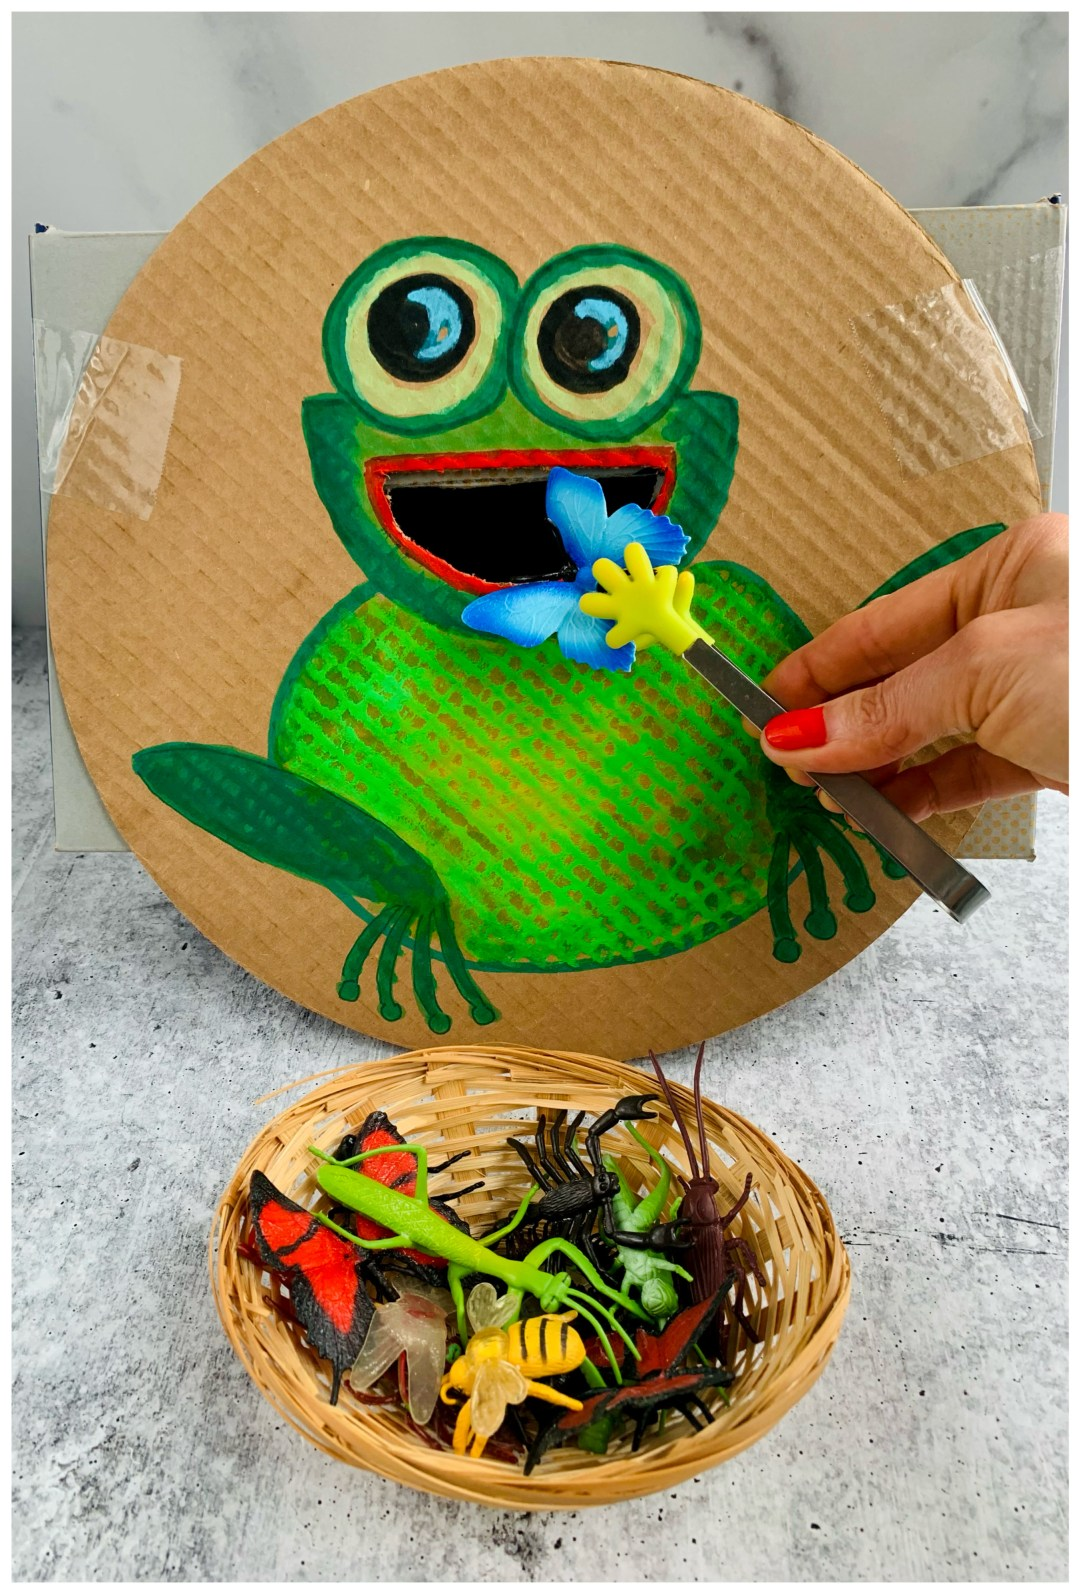 FEED THE FROG CARDBOARD DIY KIDS ACTIVITY